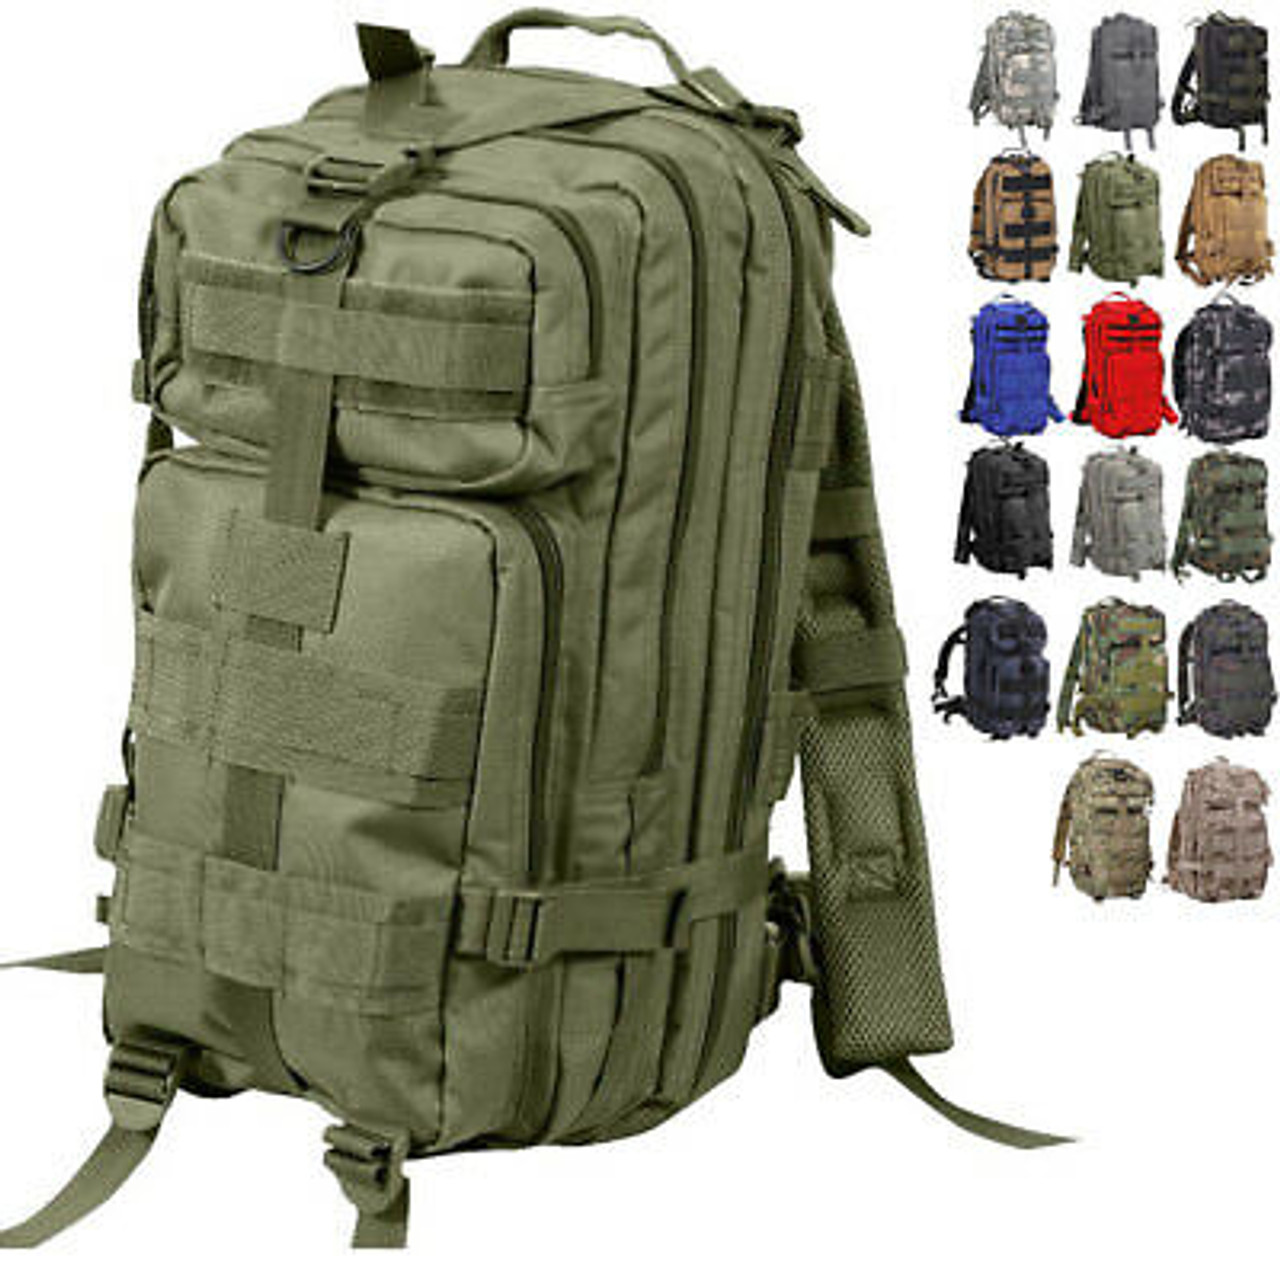 """Every Day Carry 17/"""" Expandable Tactical Assault Bag Day Pack Backpack Camo"""